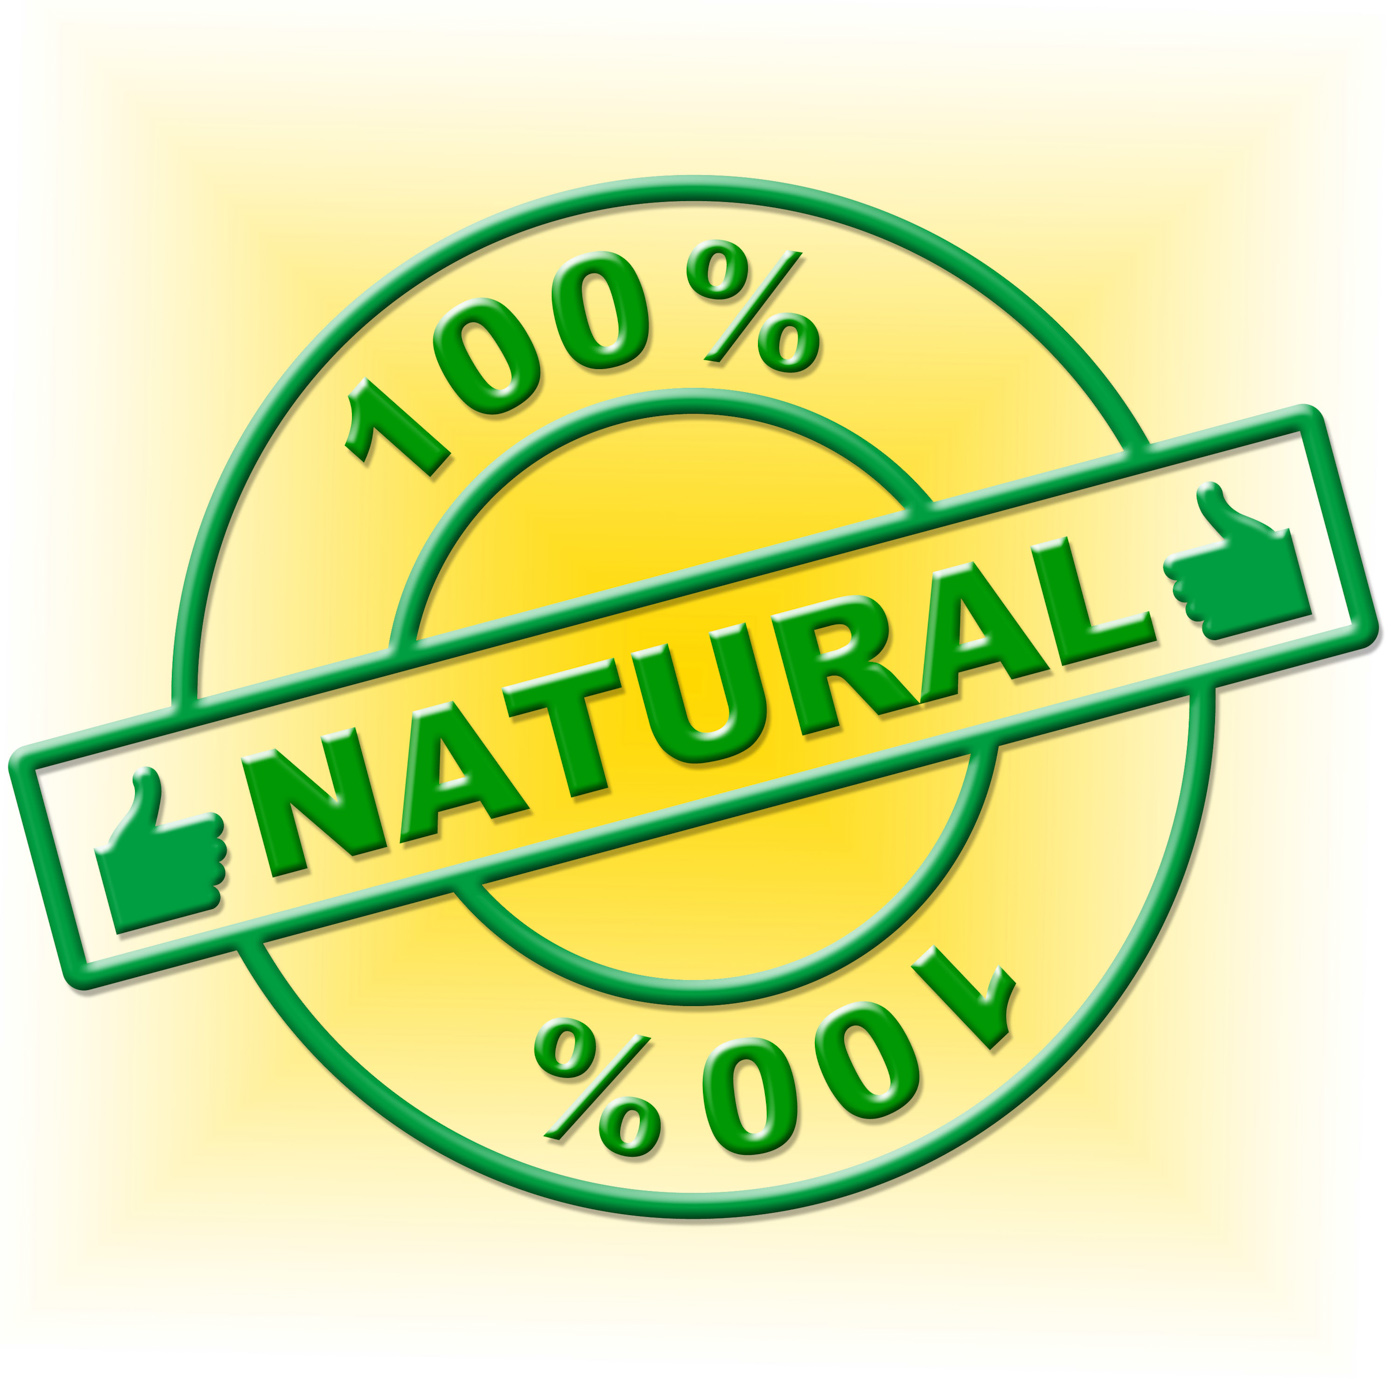 Hundred Percent Natural Represents Absolute Organic And Nature, Absolute, Bio, Completely, Genuine, HQ Photo